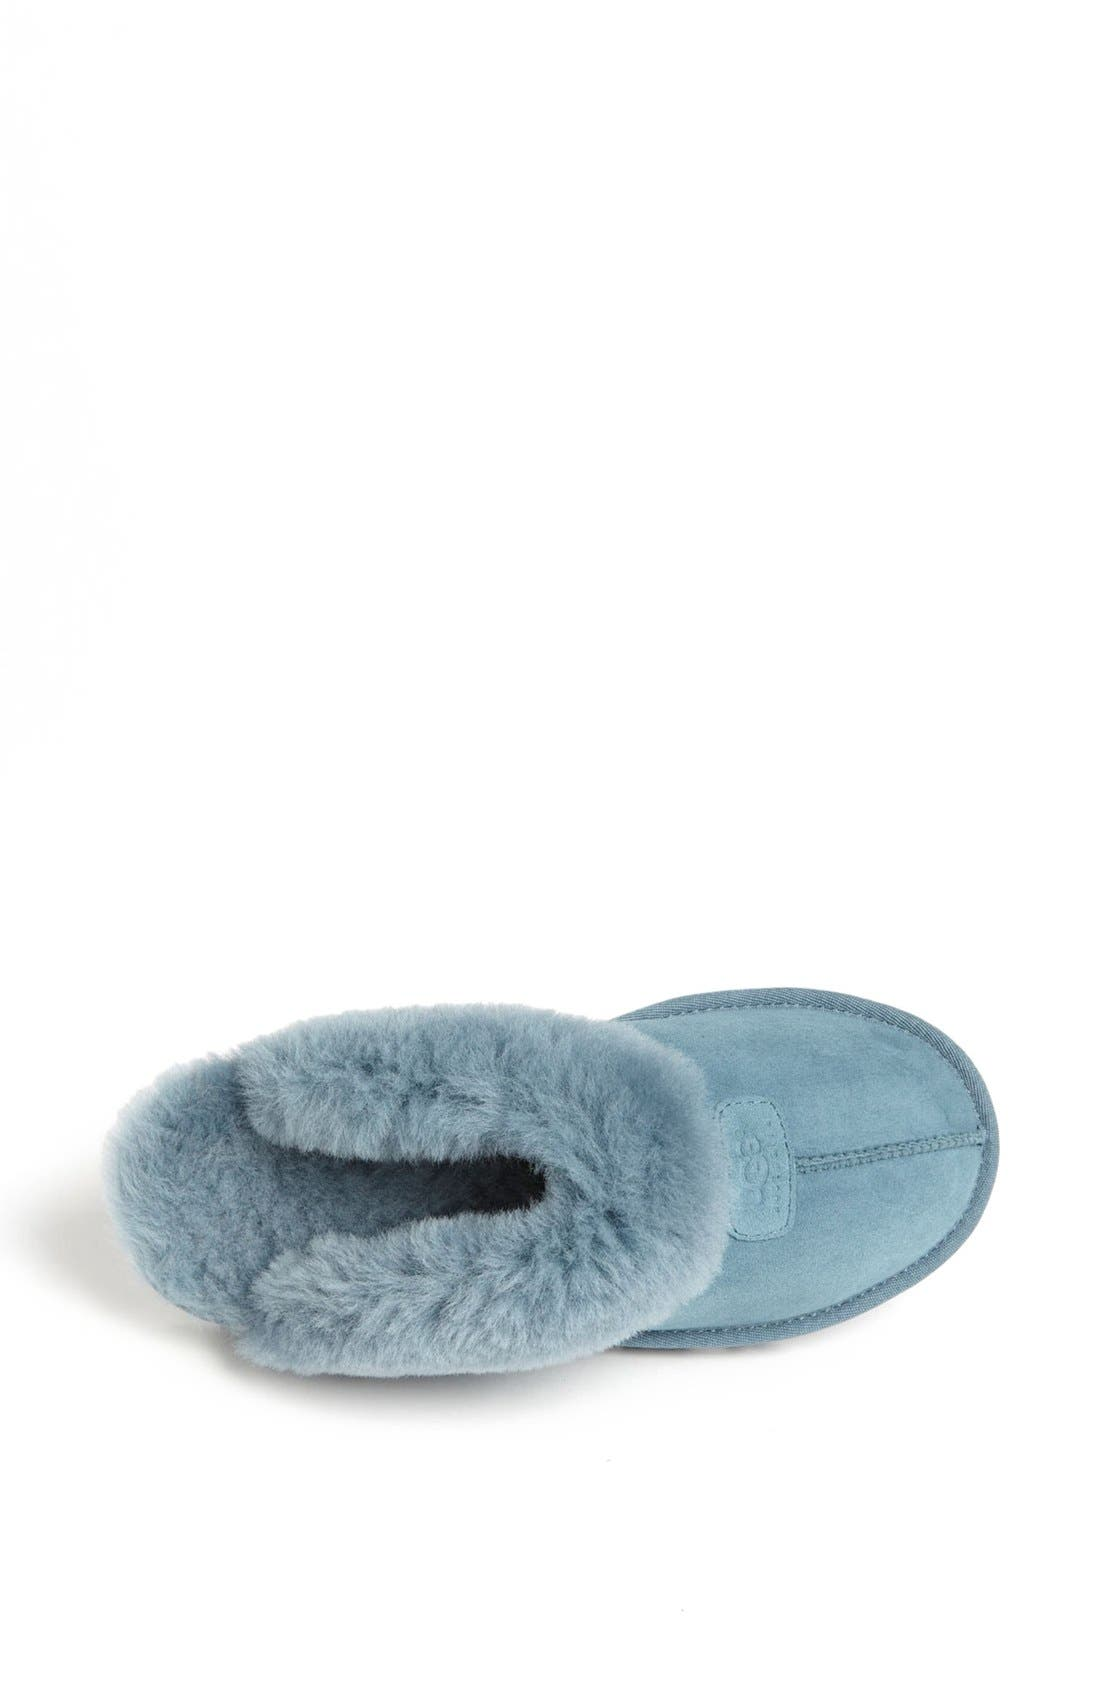 Alternate Image 3  - UGG® Australia Slipper (Women) (Exclusive Color)